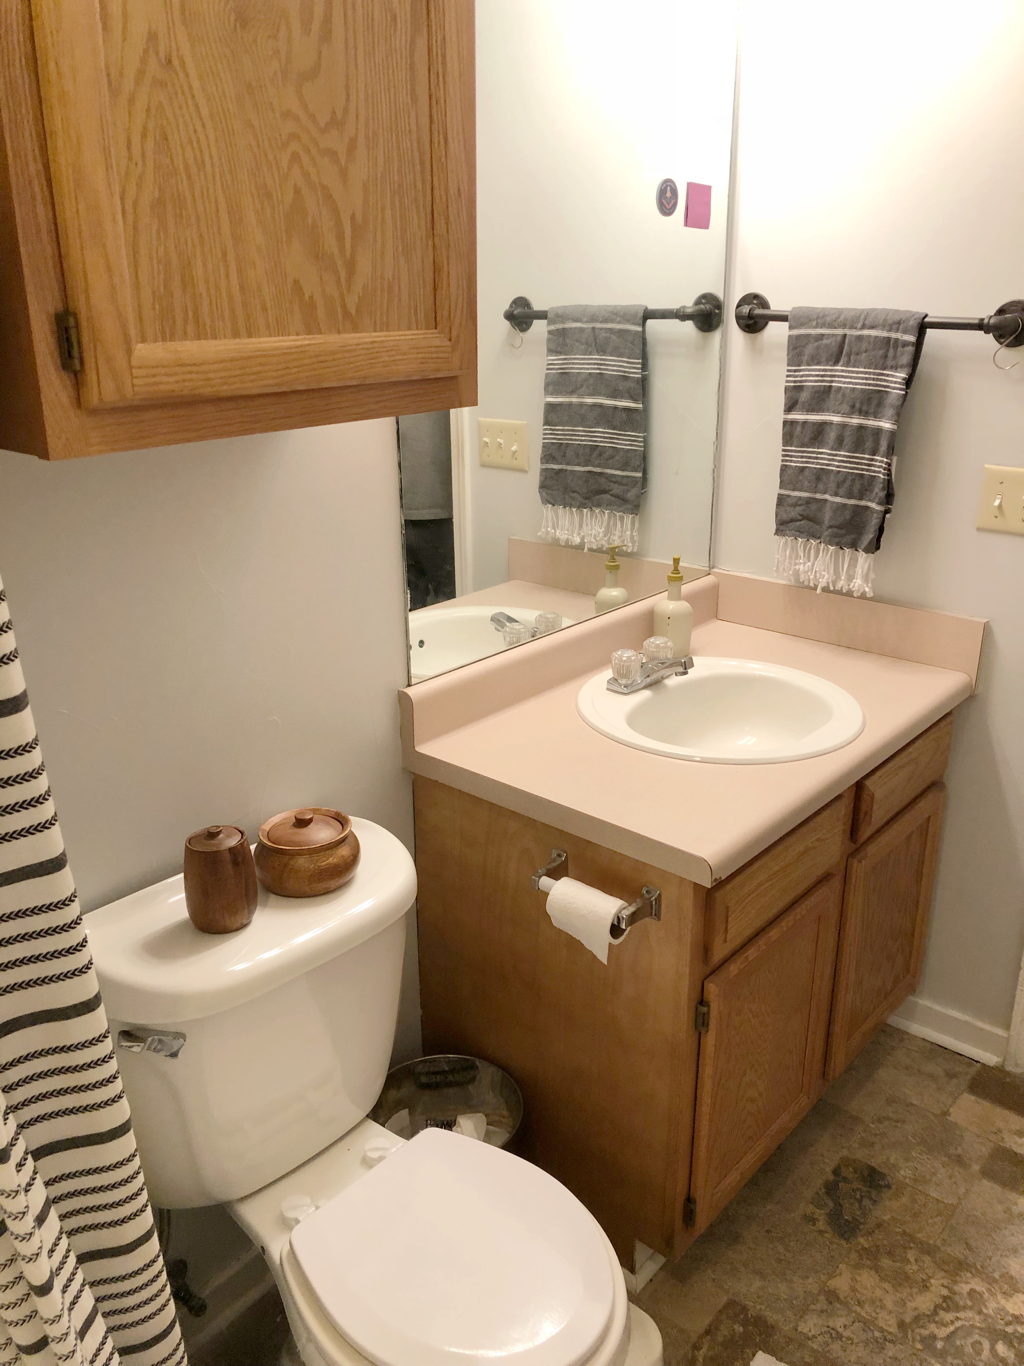 Bathroom remodel after new paint job and towel racks.